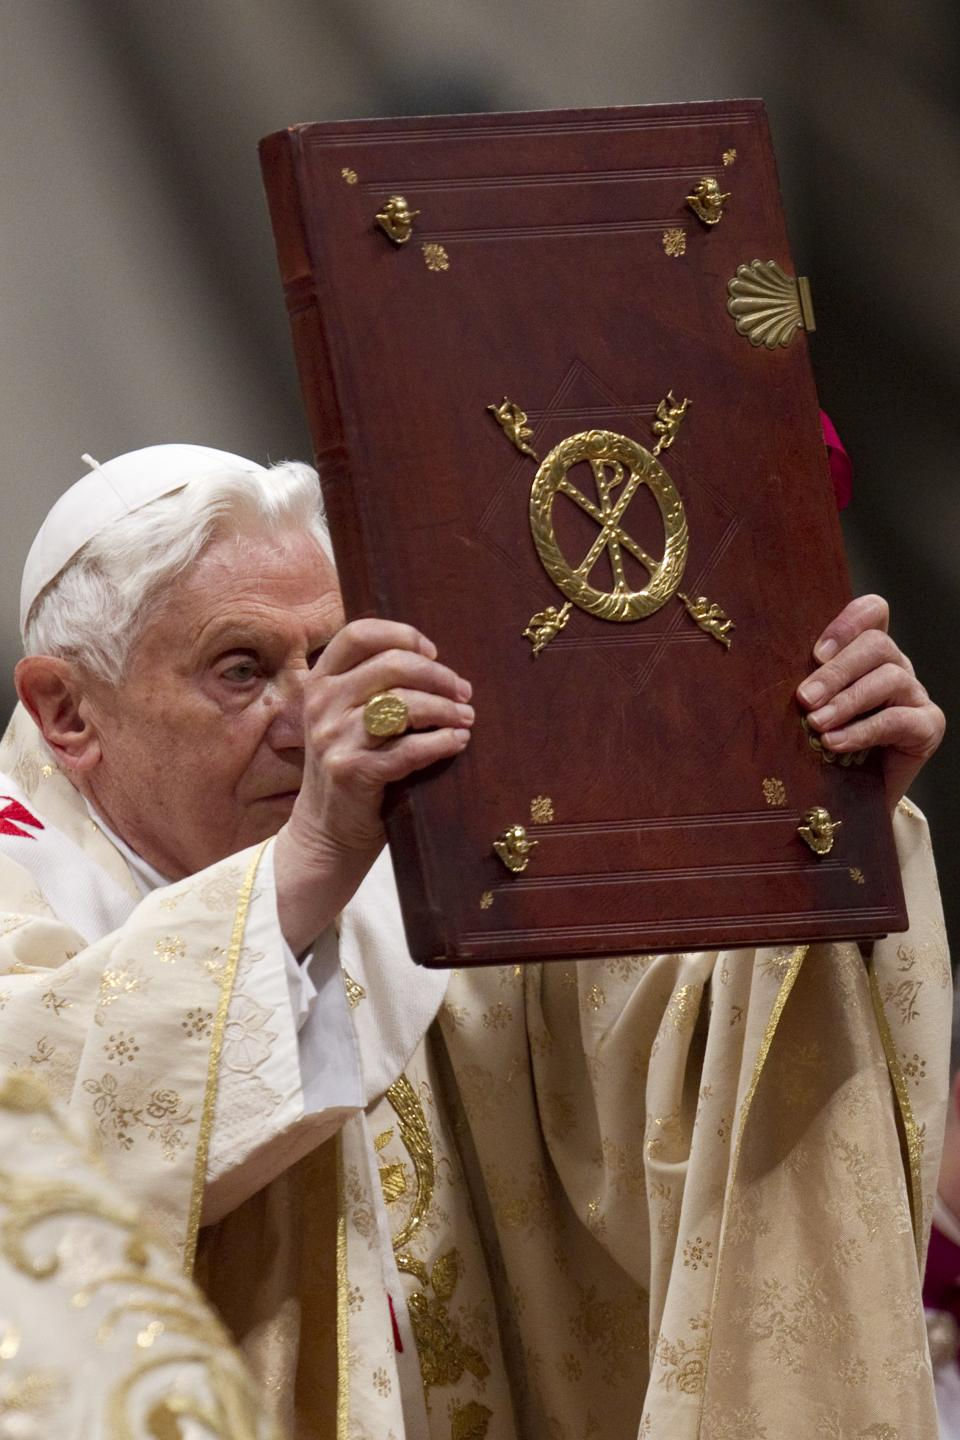 Pope Benedict XVI holds the Book of the Gospels as he celebrates Christmas Mass in St. Peter's Basilica at the Vatican, Saturday, Dec. 24, 2011. (AP Photo/Andrew Medichini)